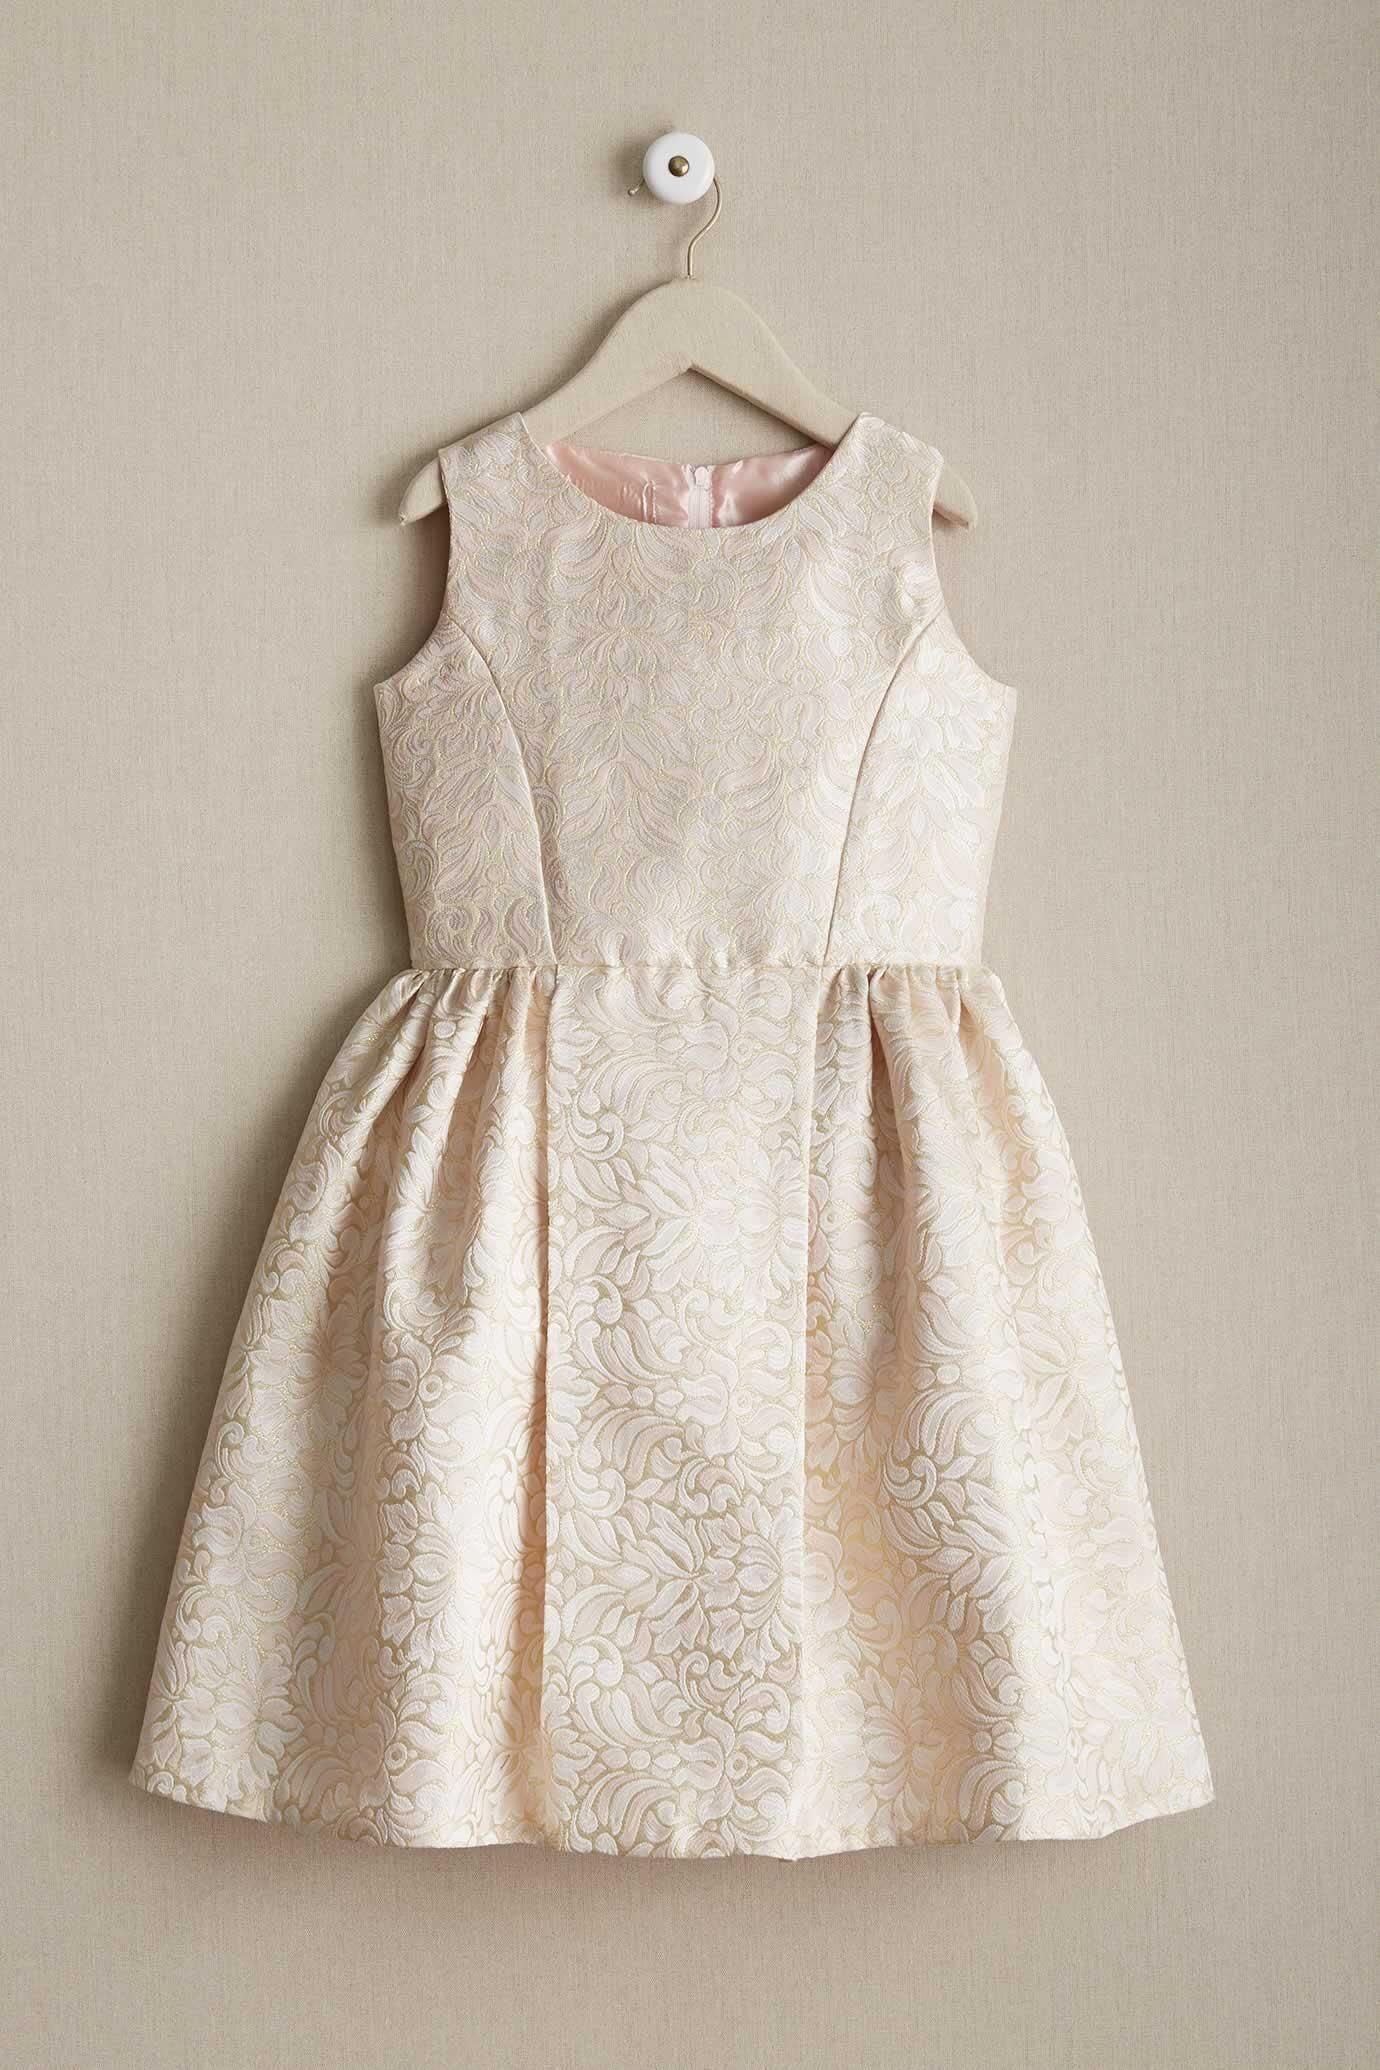 14a6fad7a Girls Shimmer Brocade Dress | FlowerSophie | Brocade dresses, Dress ...